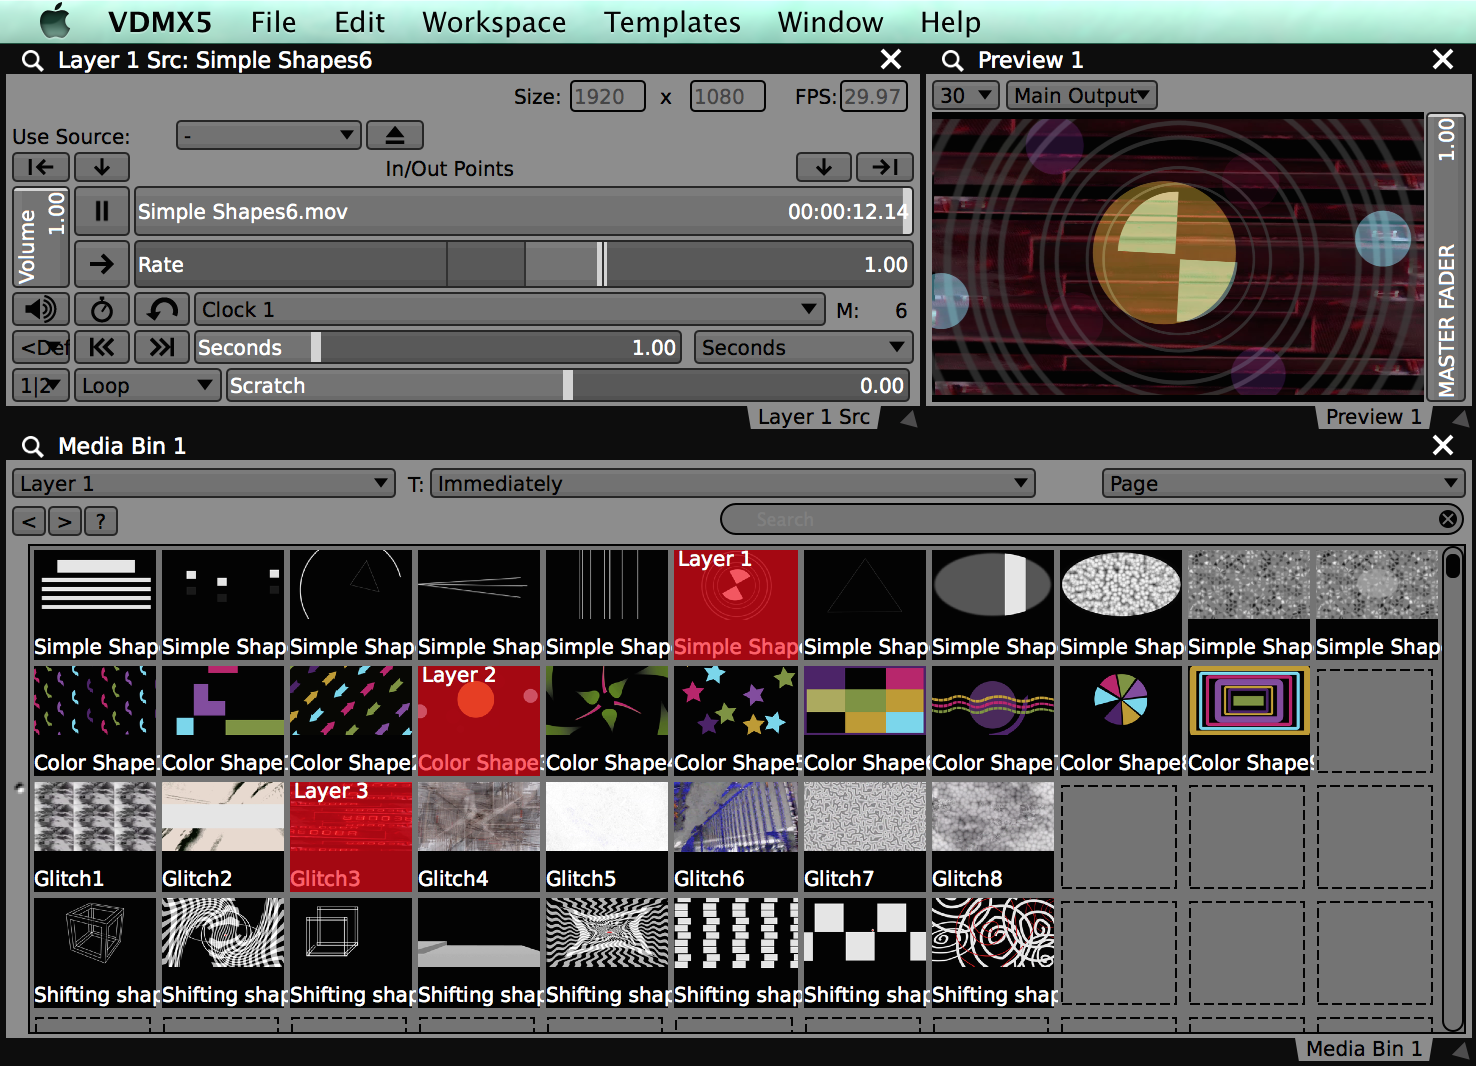 New video clips for your VDMX media bin